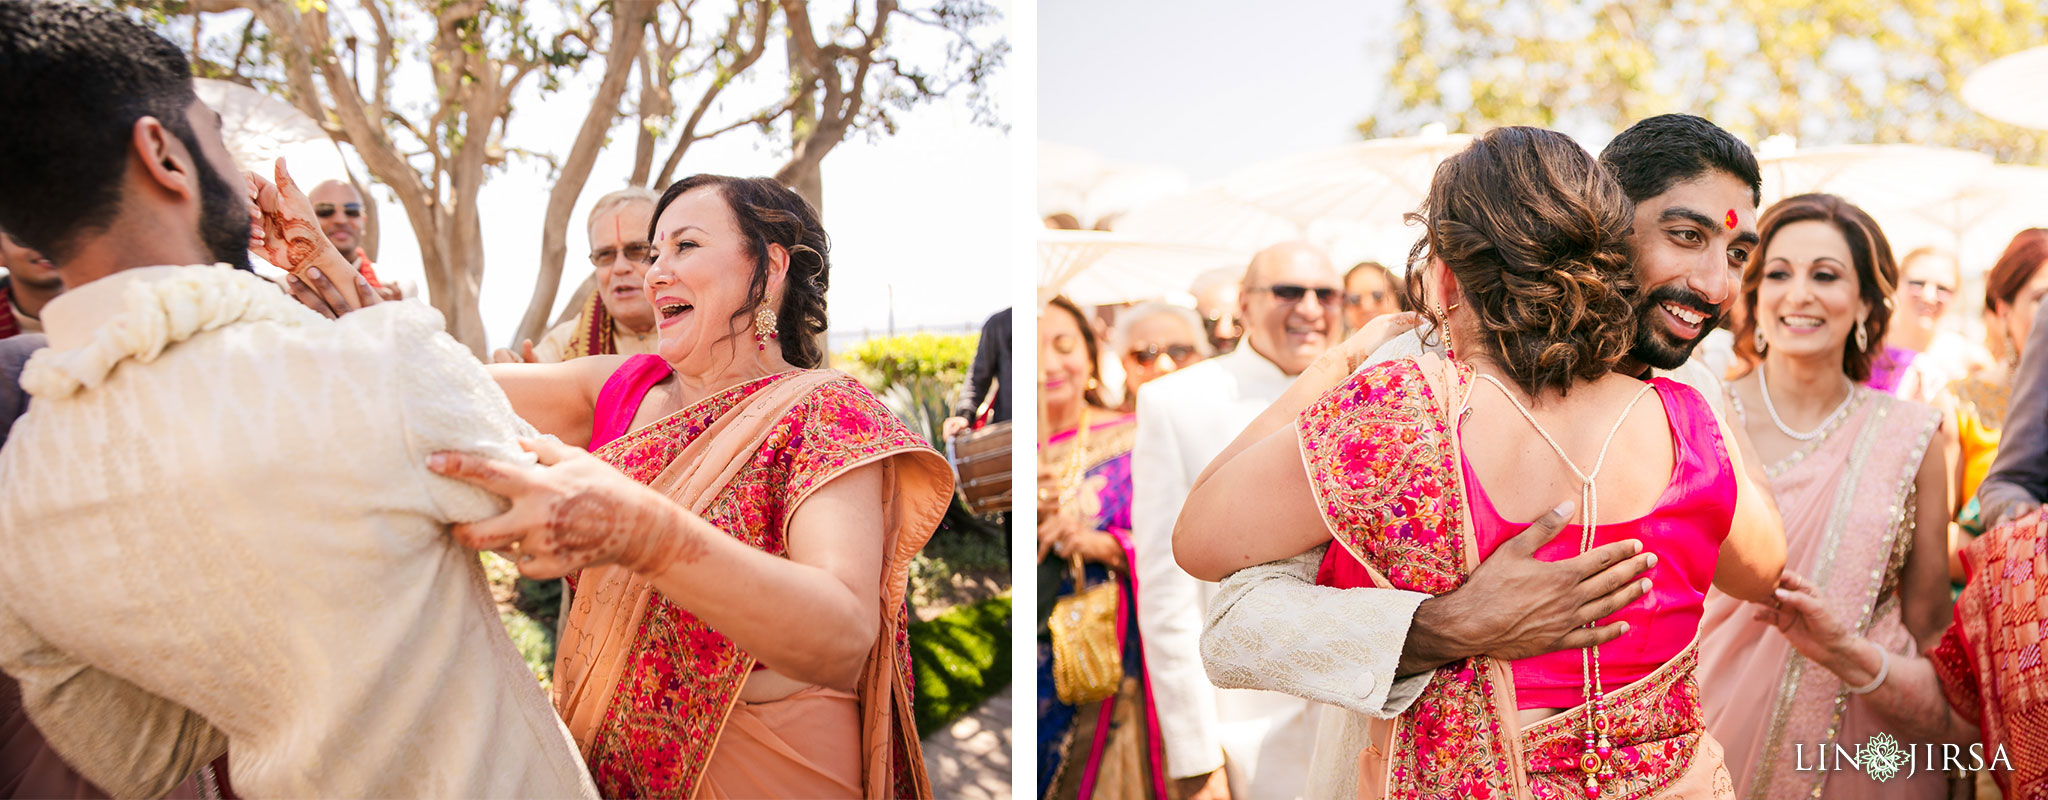 011 ritz carlton laguna niguel indian baraat wedding photography